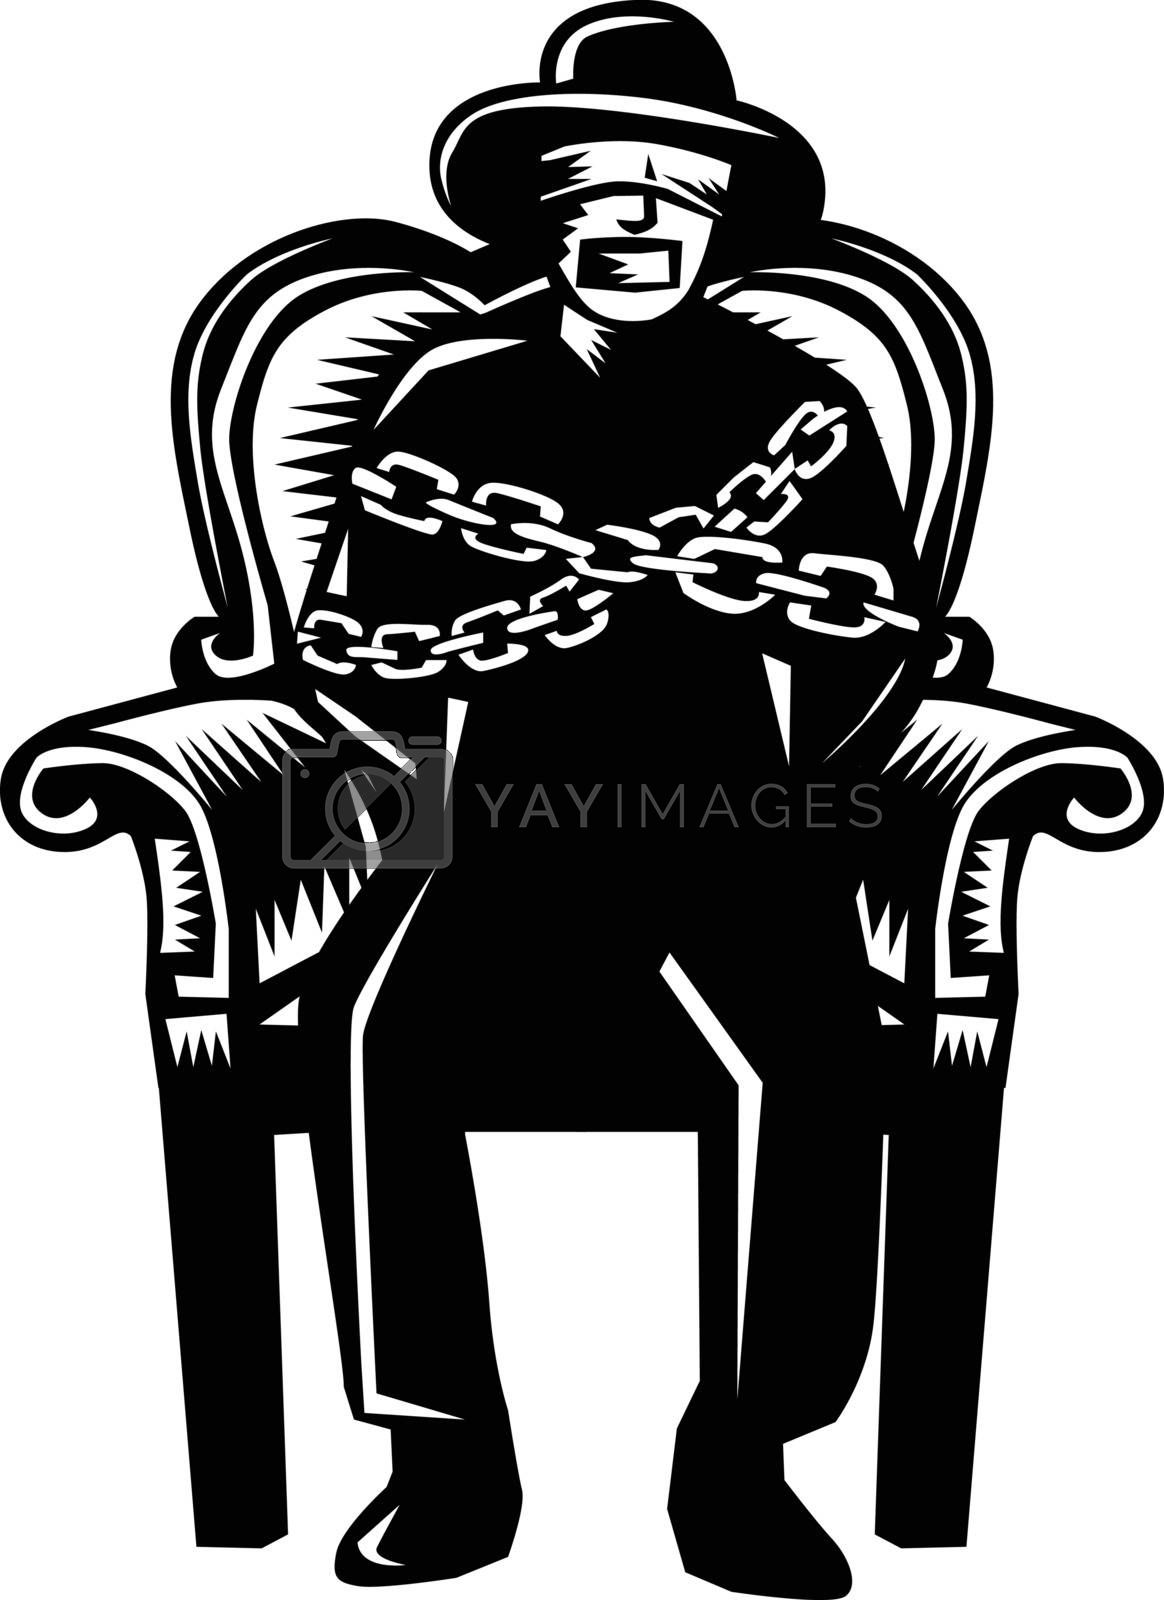 Illustration of a man in hat blindfolded and gagged and duct tape over mouth and bound in chains sitting on grand arm chair viewed from front set on isolated white background.